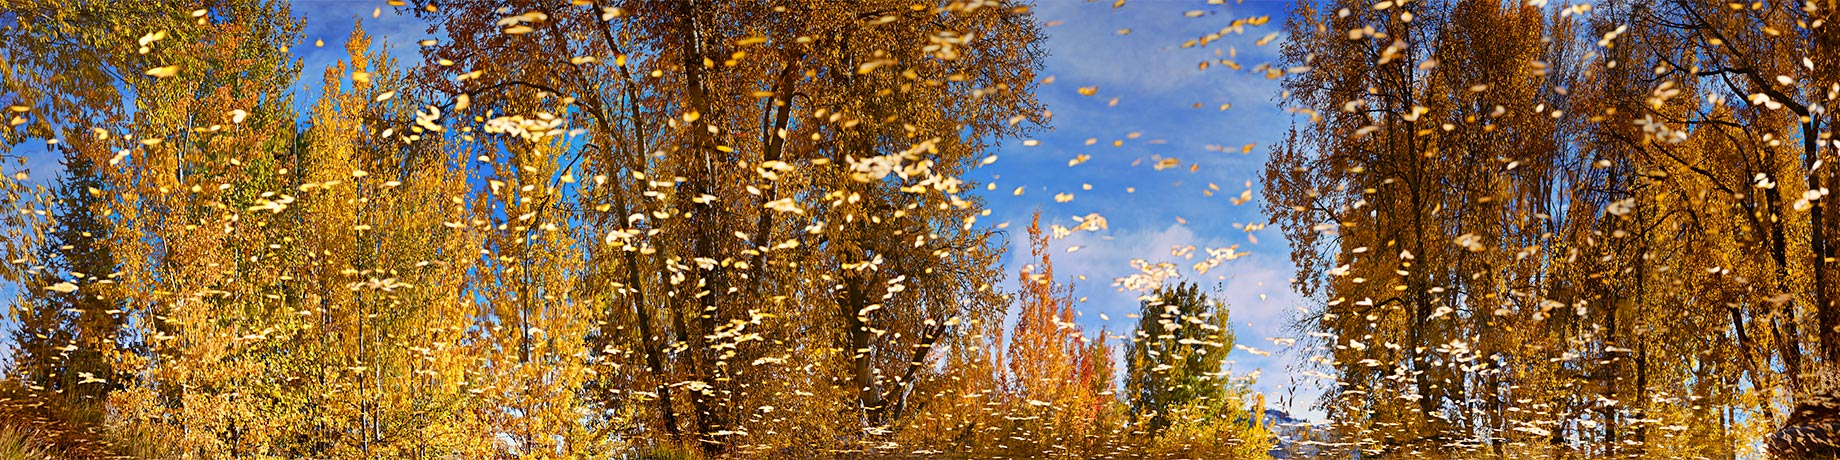 aspen-reflection-Vidaurre-jose